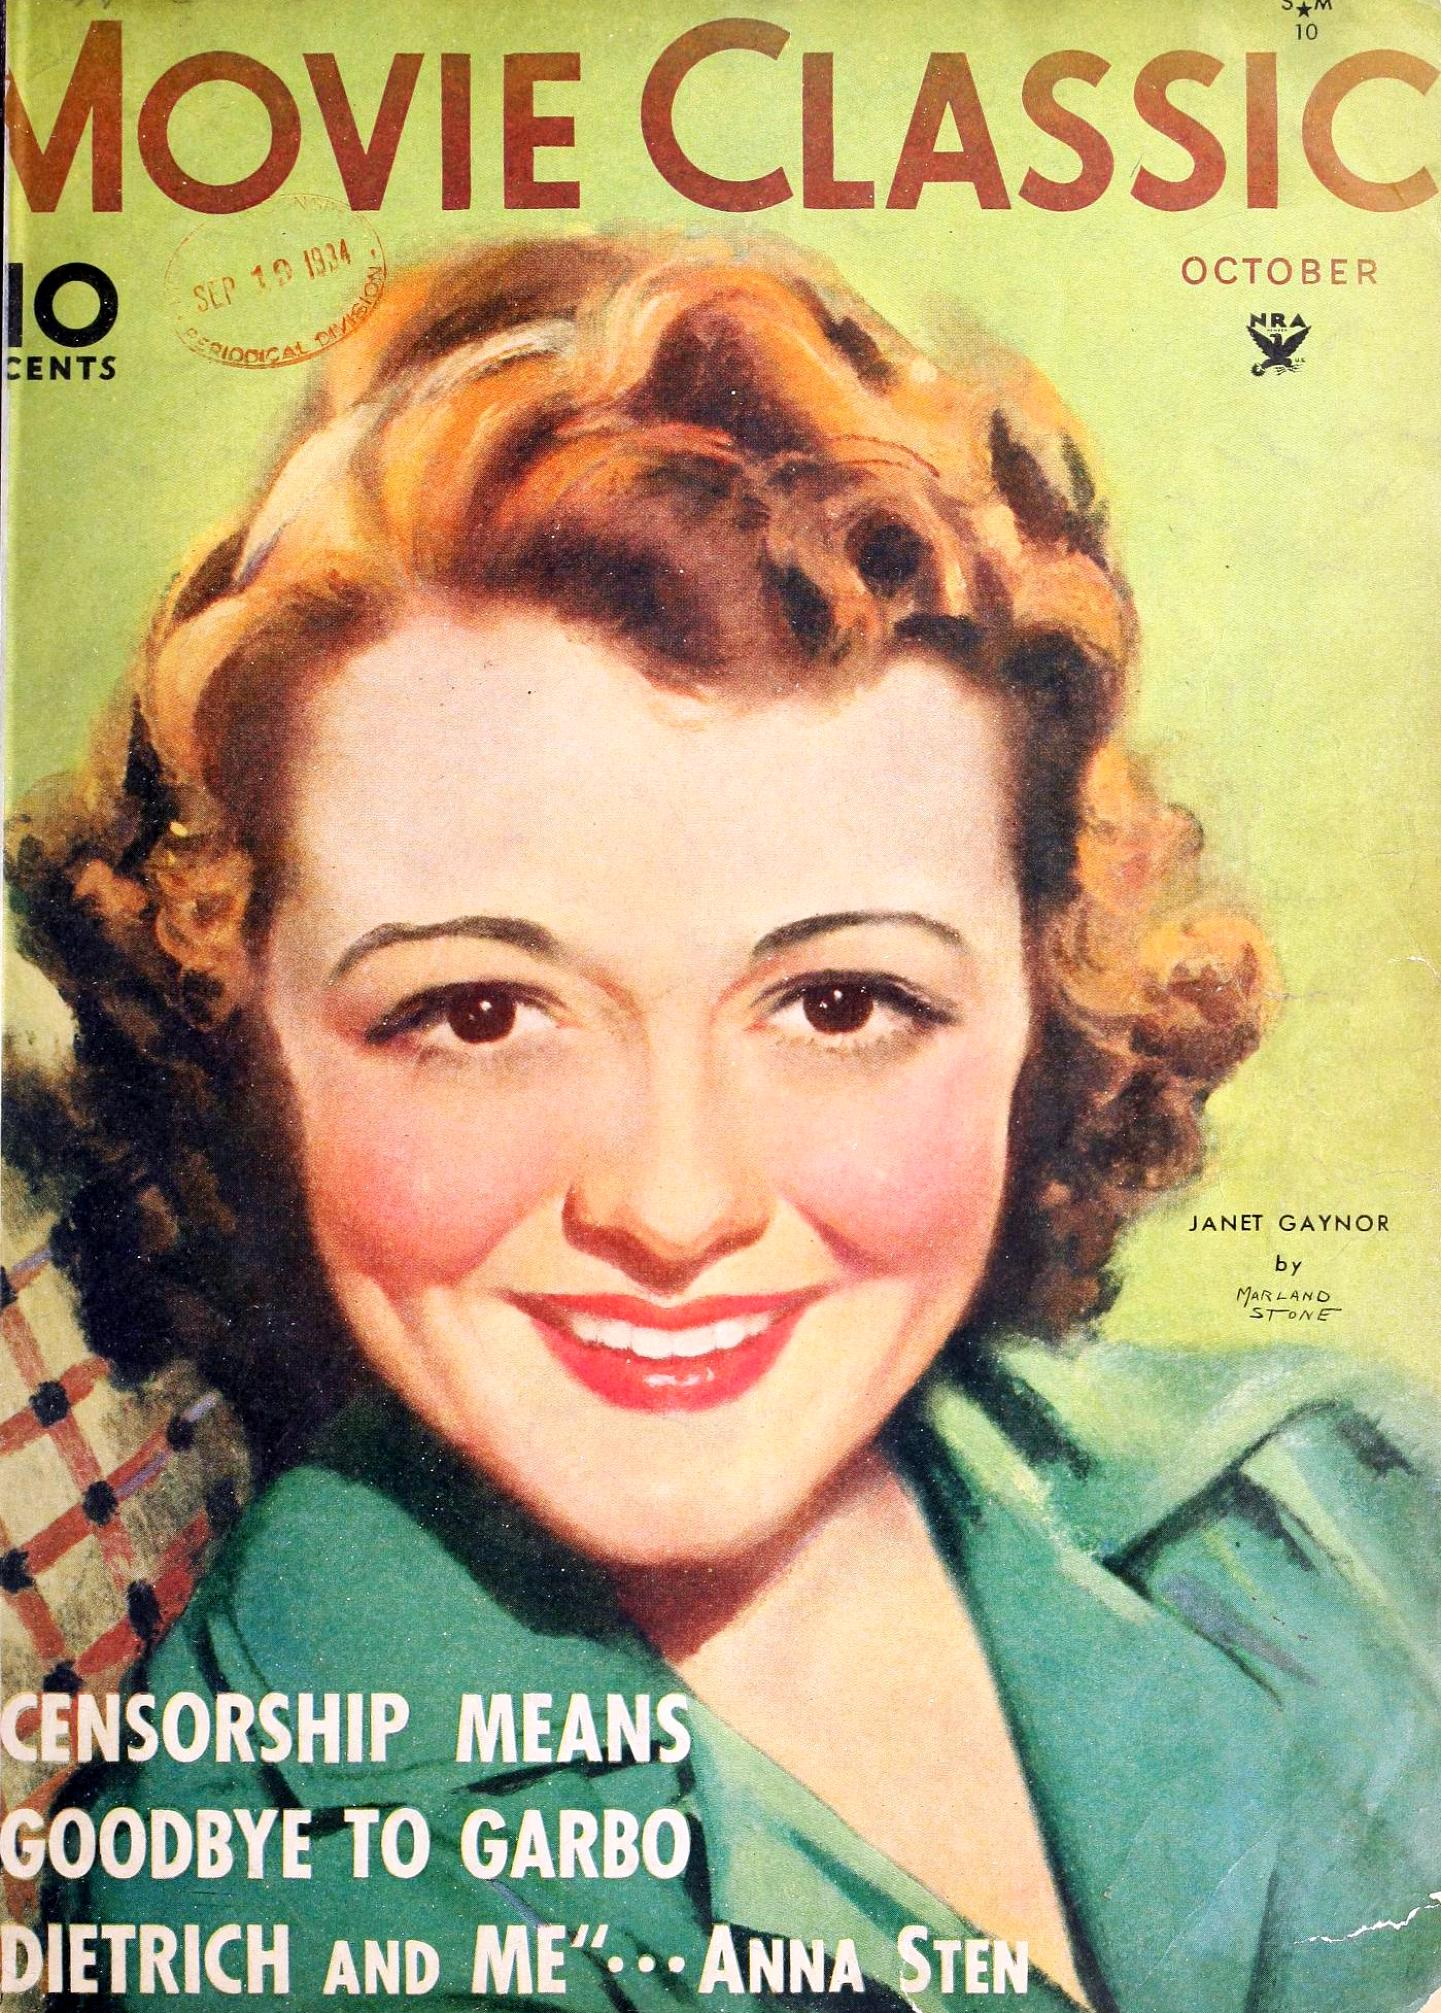 movie classic october 1934b cover